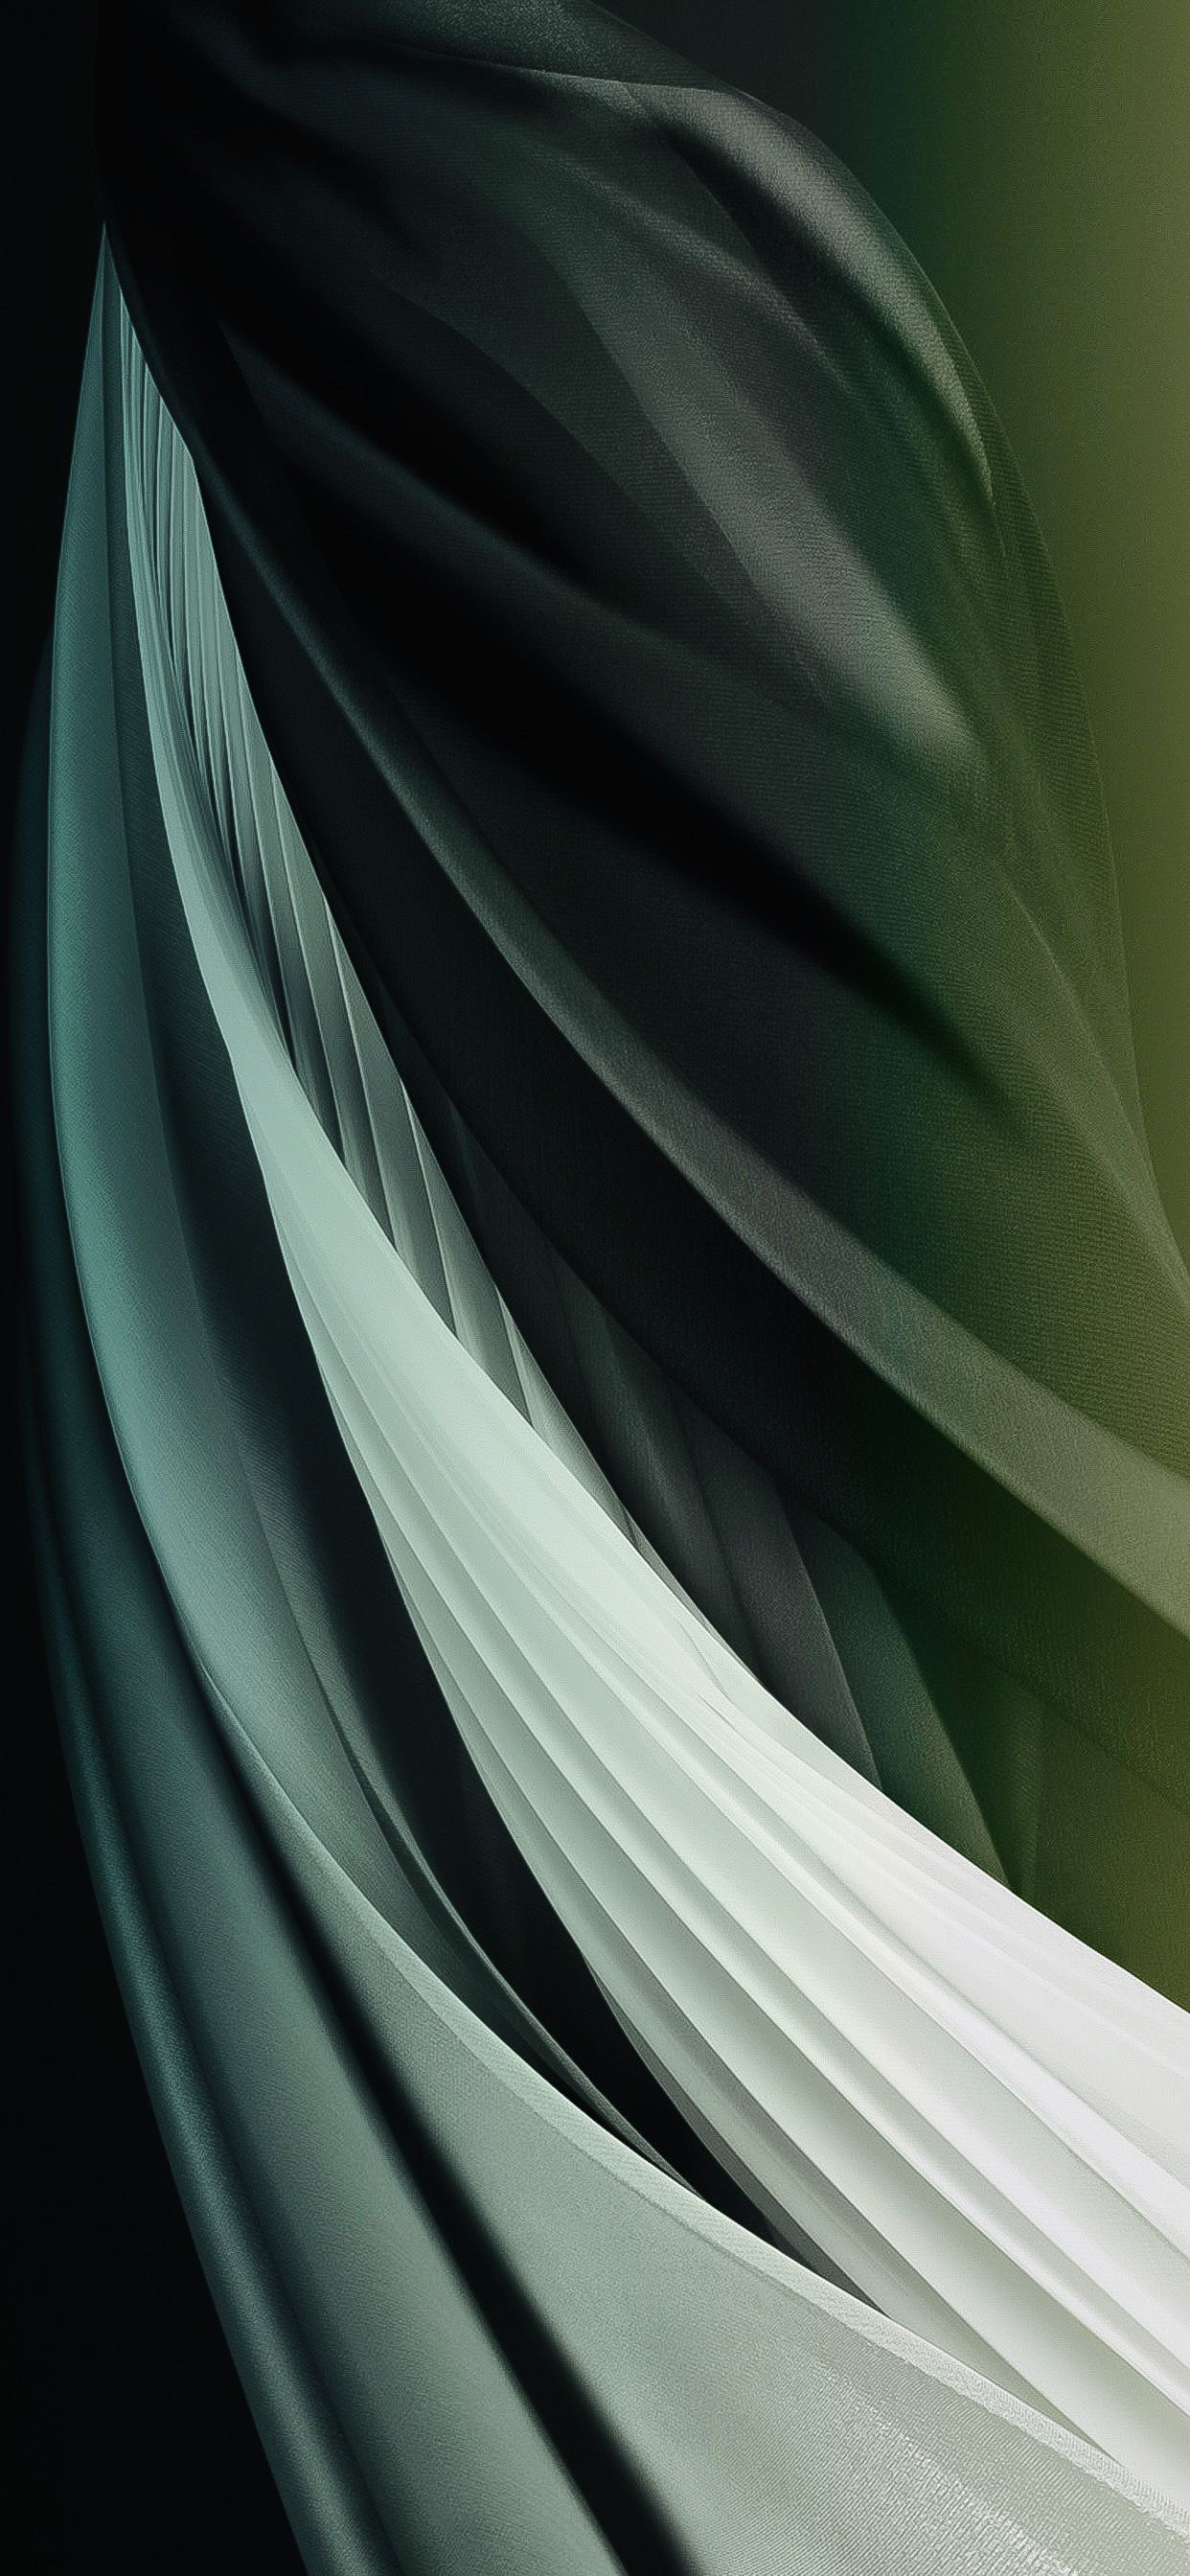 Ios14 Concept V8 Midnight Green Light Galaxy Phone Wallpaper Backgrounds Phone Wallpapers Abstract Wallpaper Backgrounds